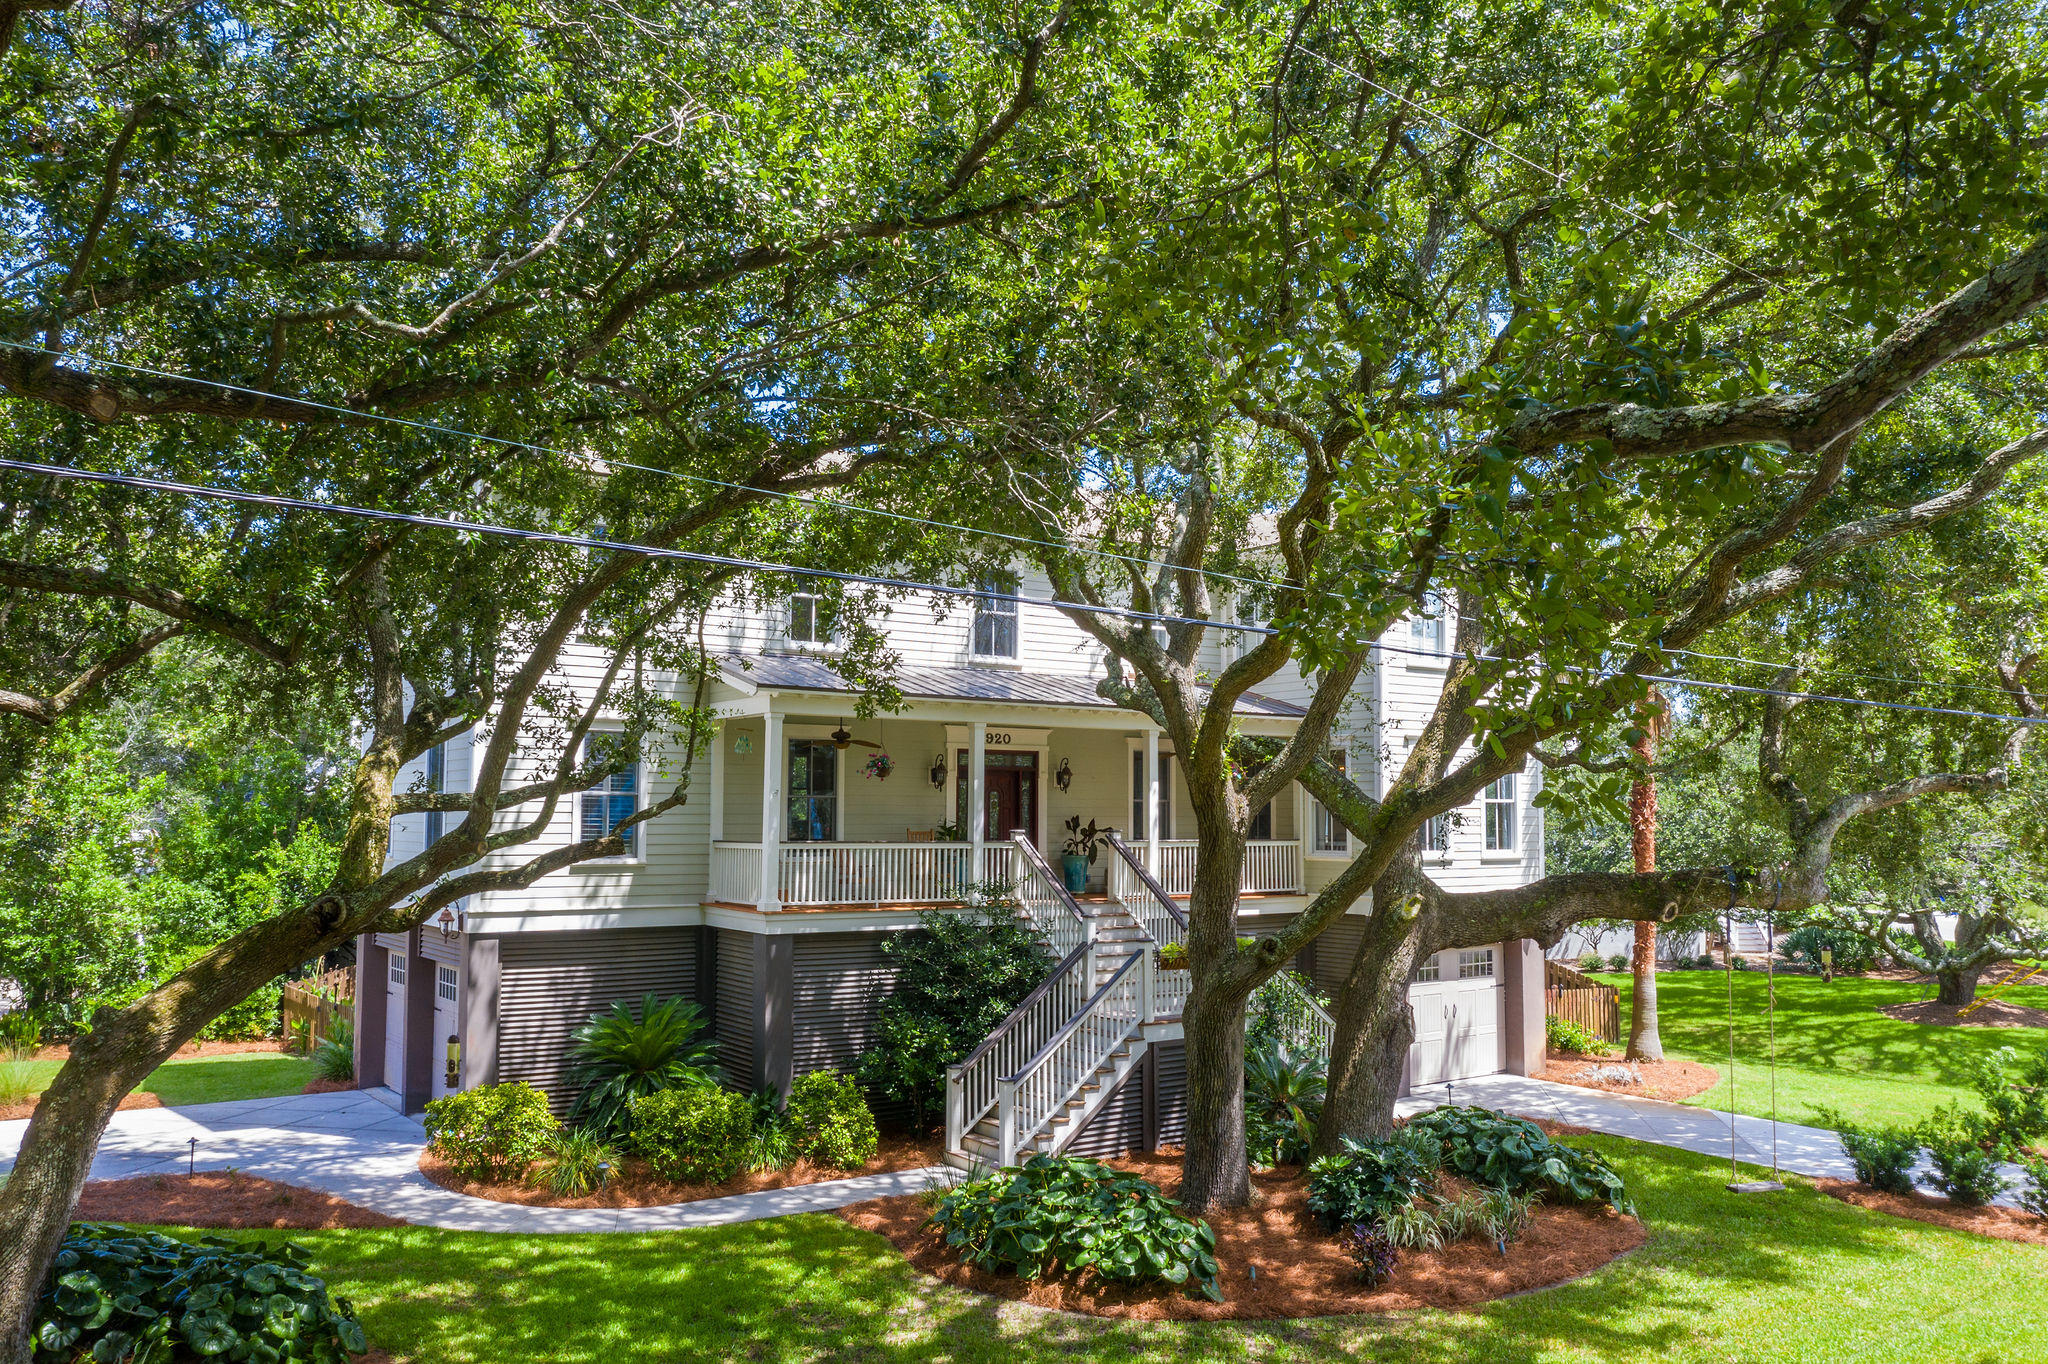 Old Mt Pleasant Homes For Sale - 920 Royall, Mount Pleasant, SC - 16